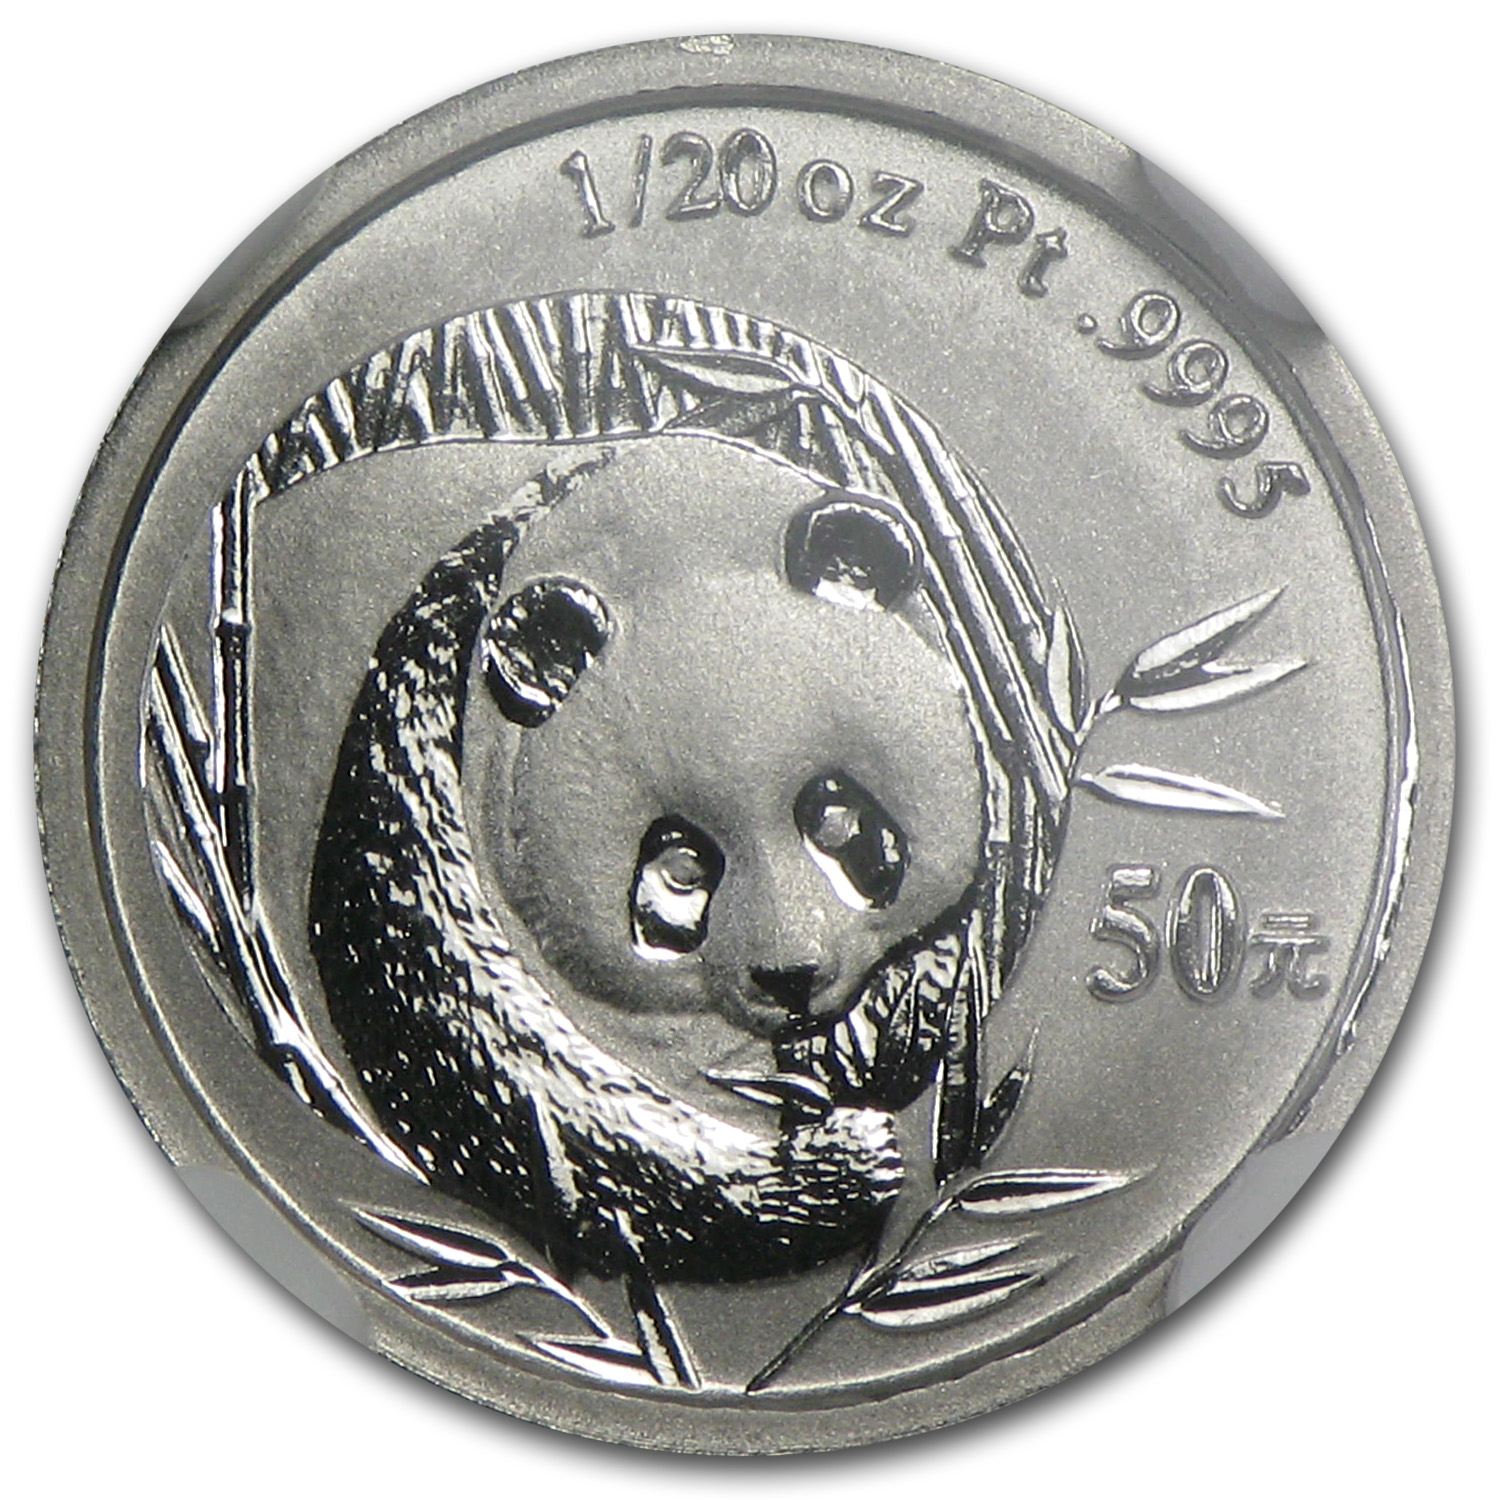 2003 China 1/20 oz Proof Platinum Panda PF-70 NGC